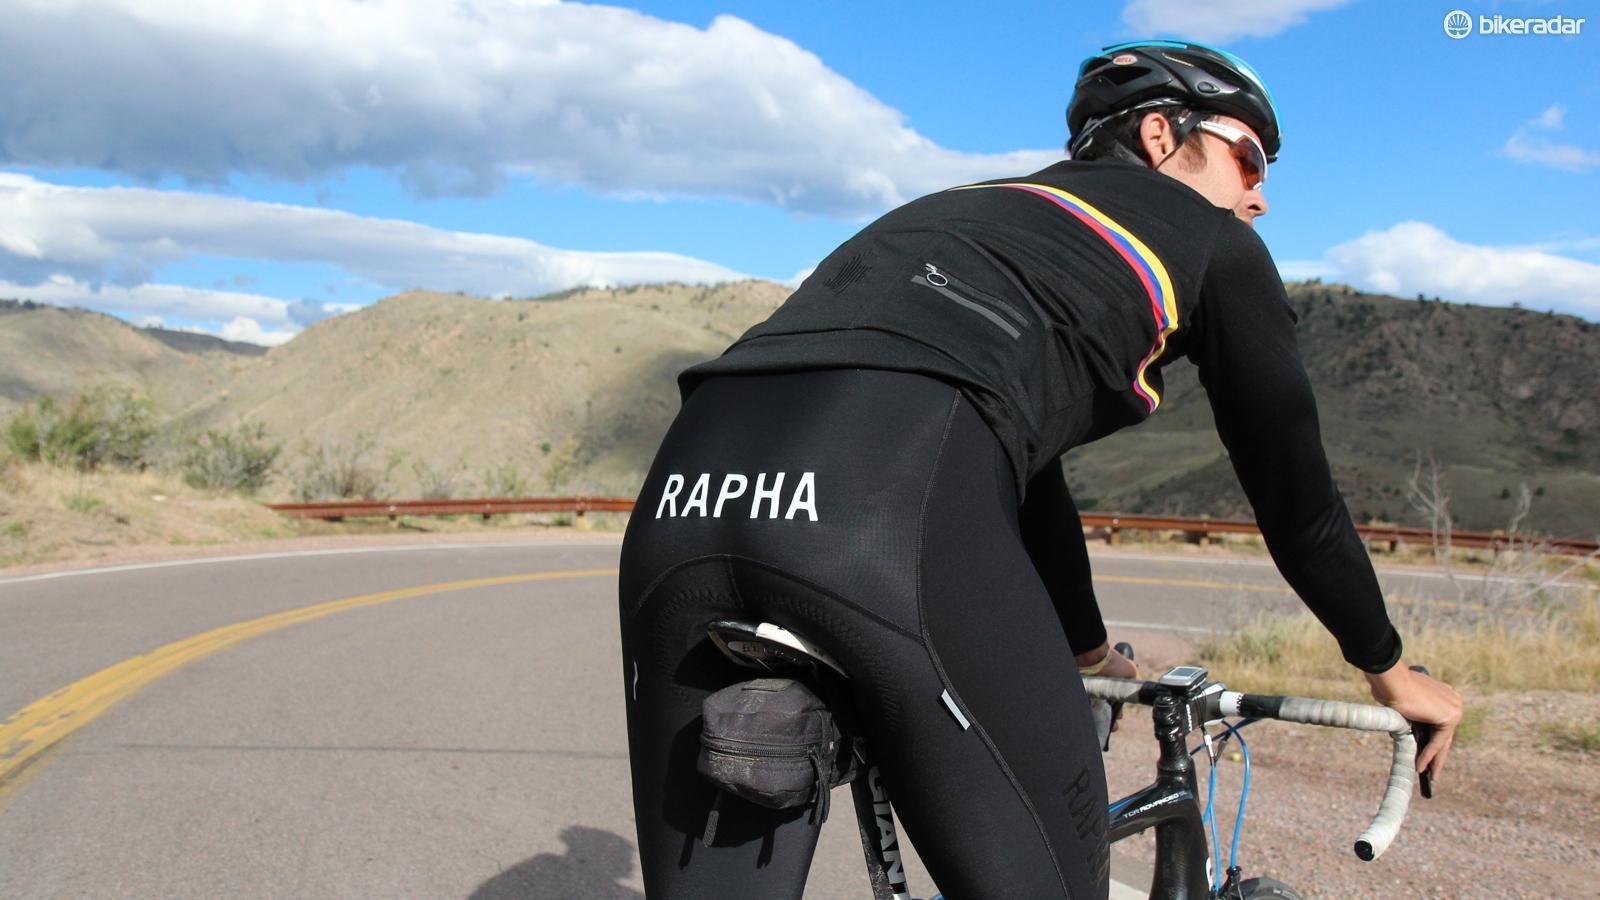 The Pro Team Padded Winter Tights get the same CyTech chamois as the Pro Team shorts